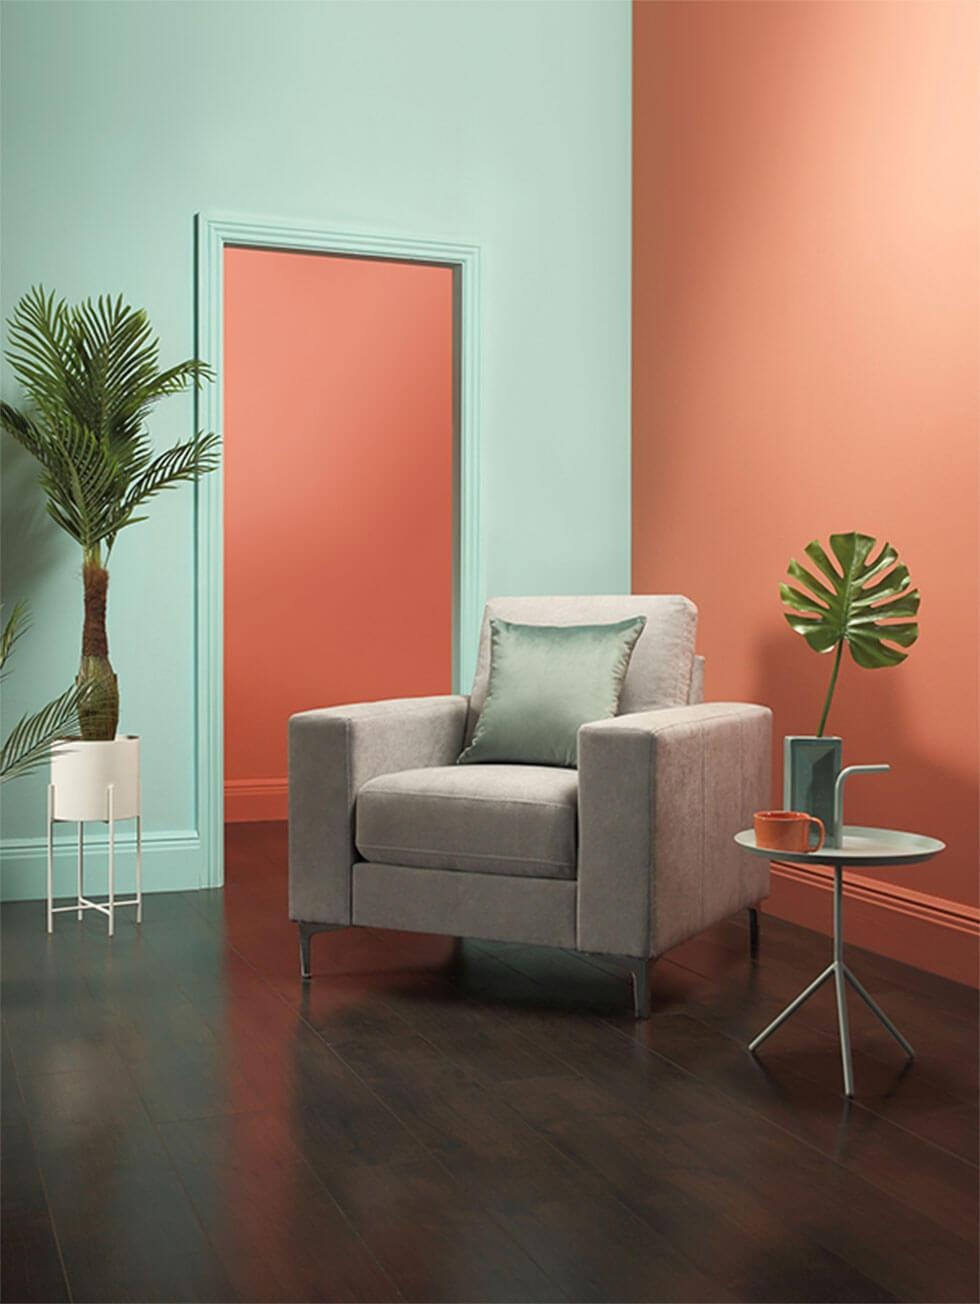 Neo mint and coral colour blocked walls with a light grey armchair